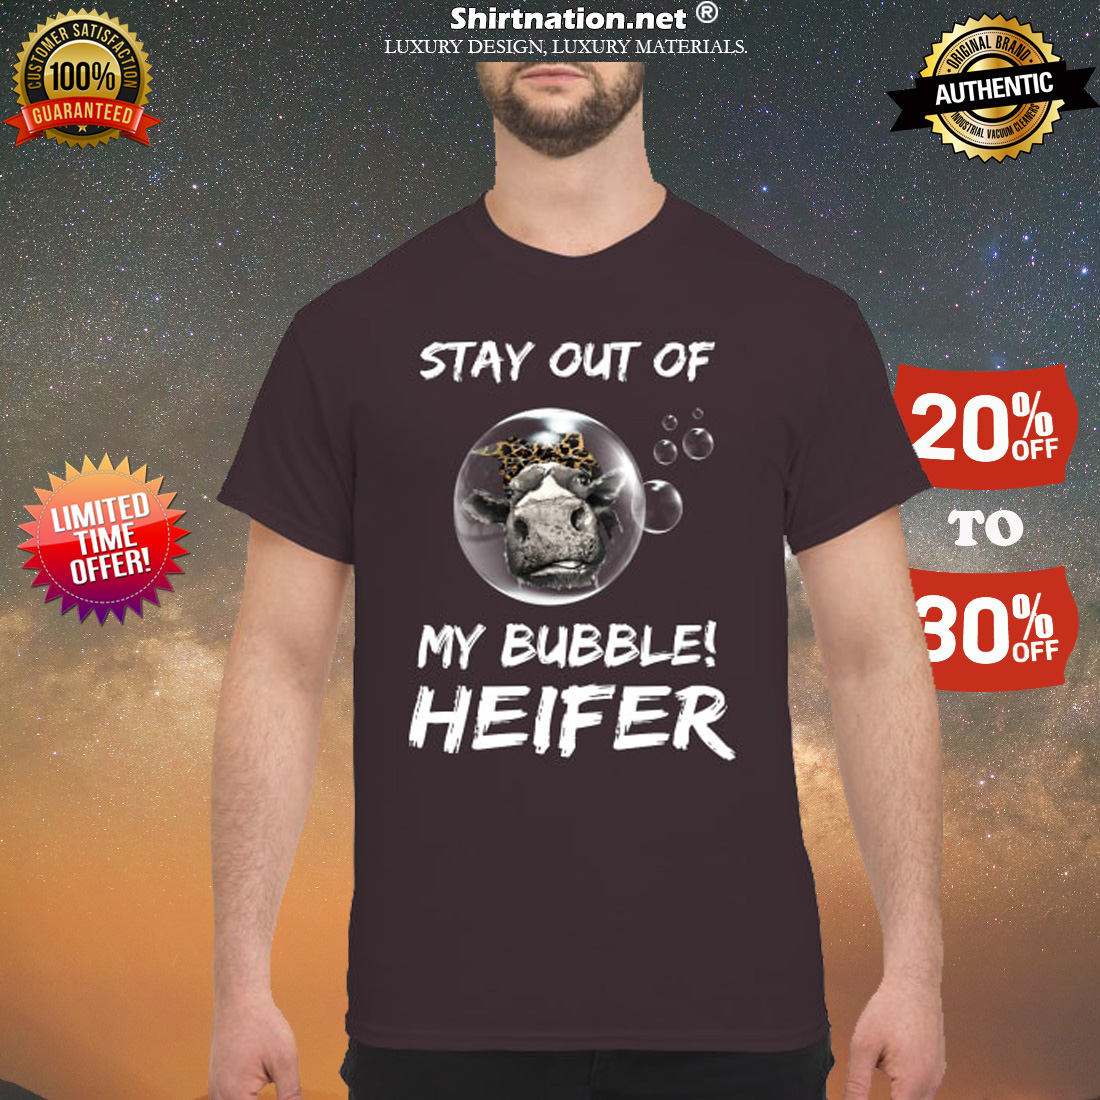 Stay out of my bubble heifer shirt